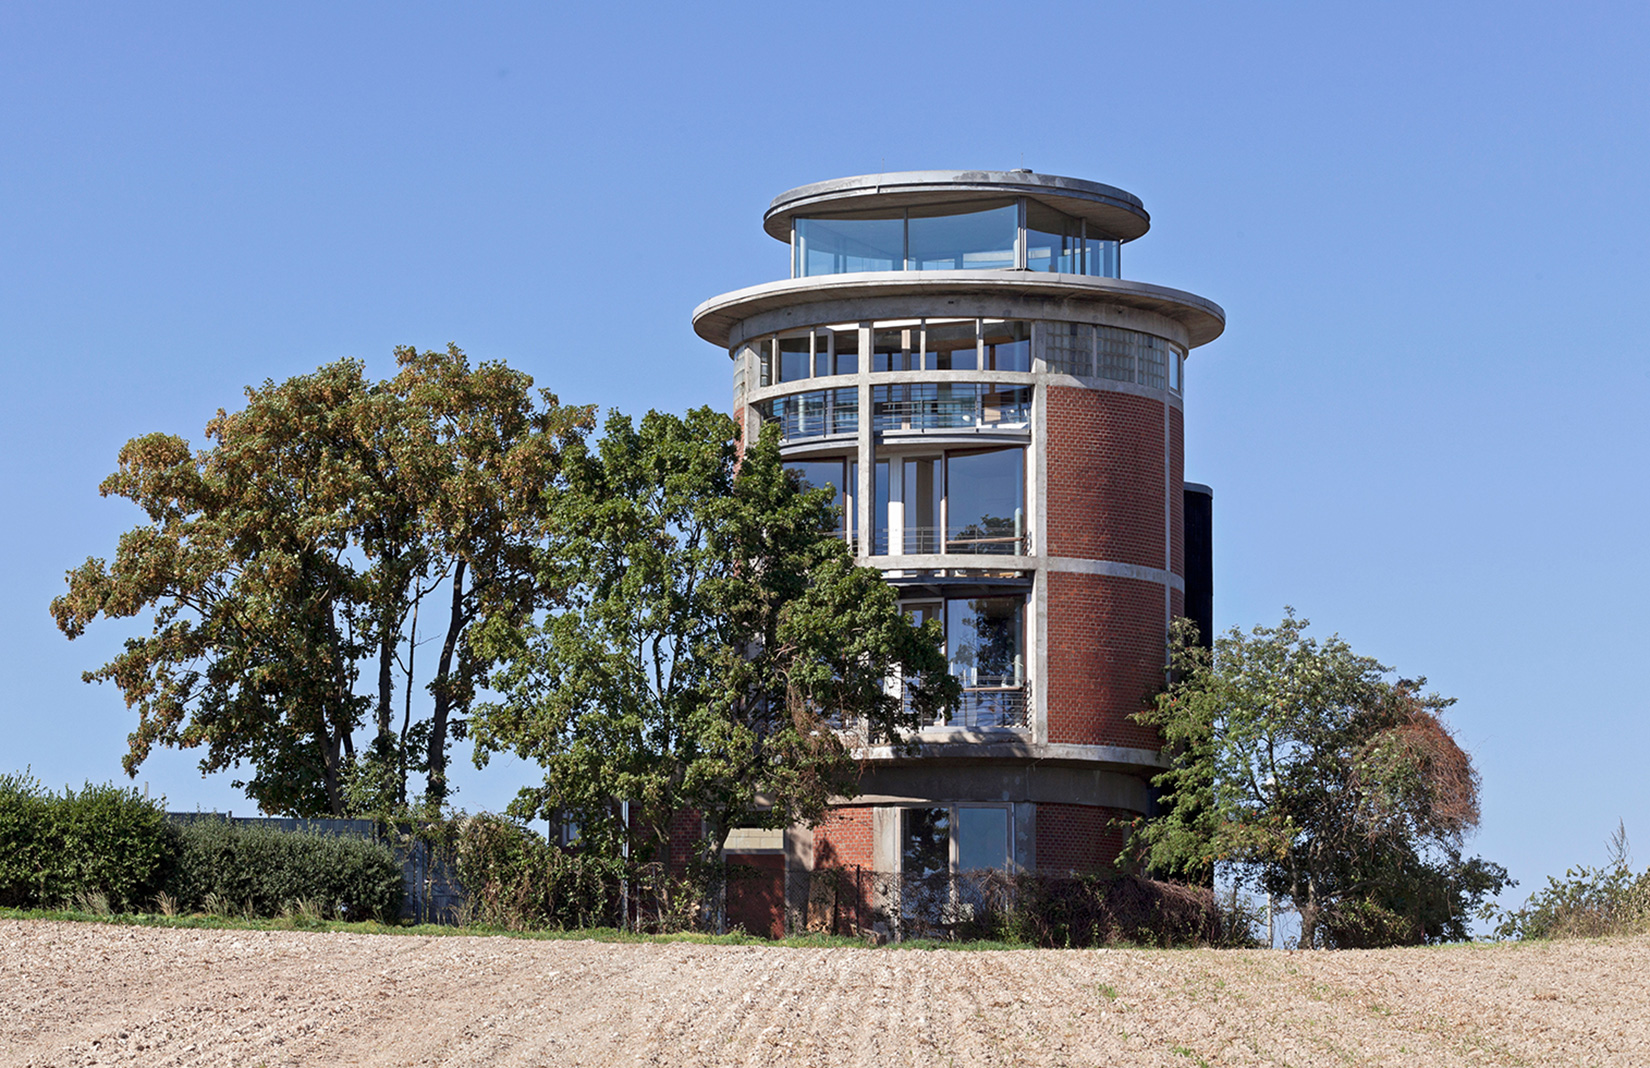 Water Tower Homes Holiday Homes Germany News And Features The Spaces